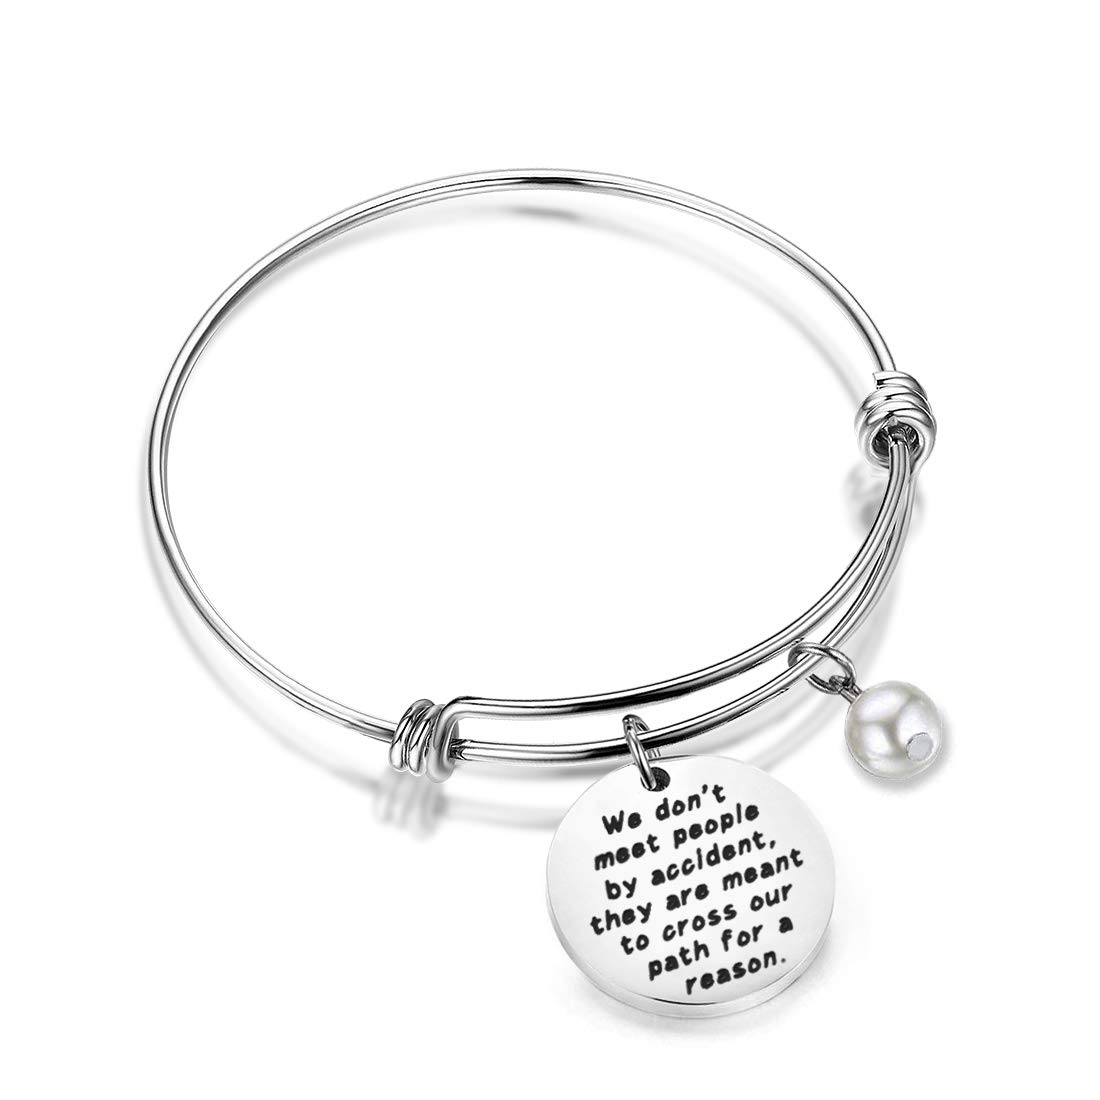 HOLLP Coworker Leaving Gifts Retirement Jewelry We Don't Meet People by Accident They are Meant to Cross Our Path for A Reason Leaving Goodbye Friendship Memorial Bracelet Going Away Gifts (Silver)